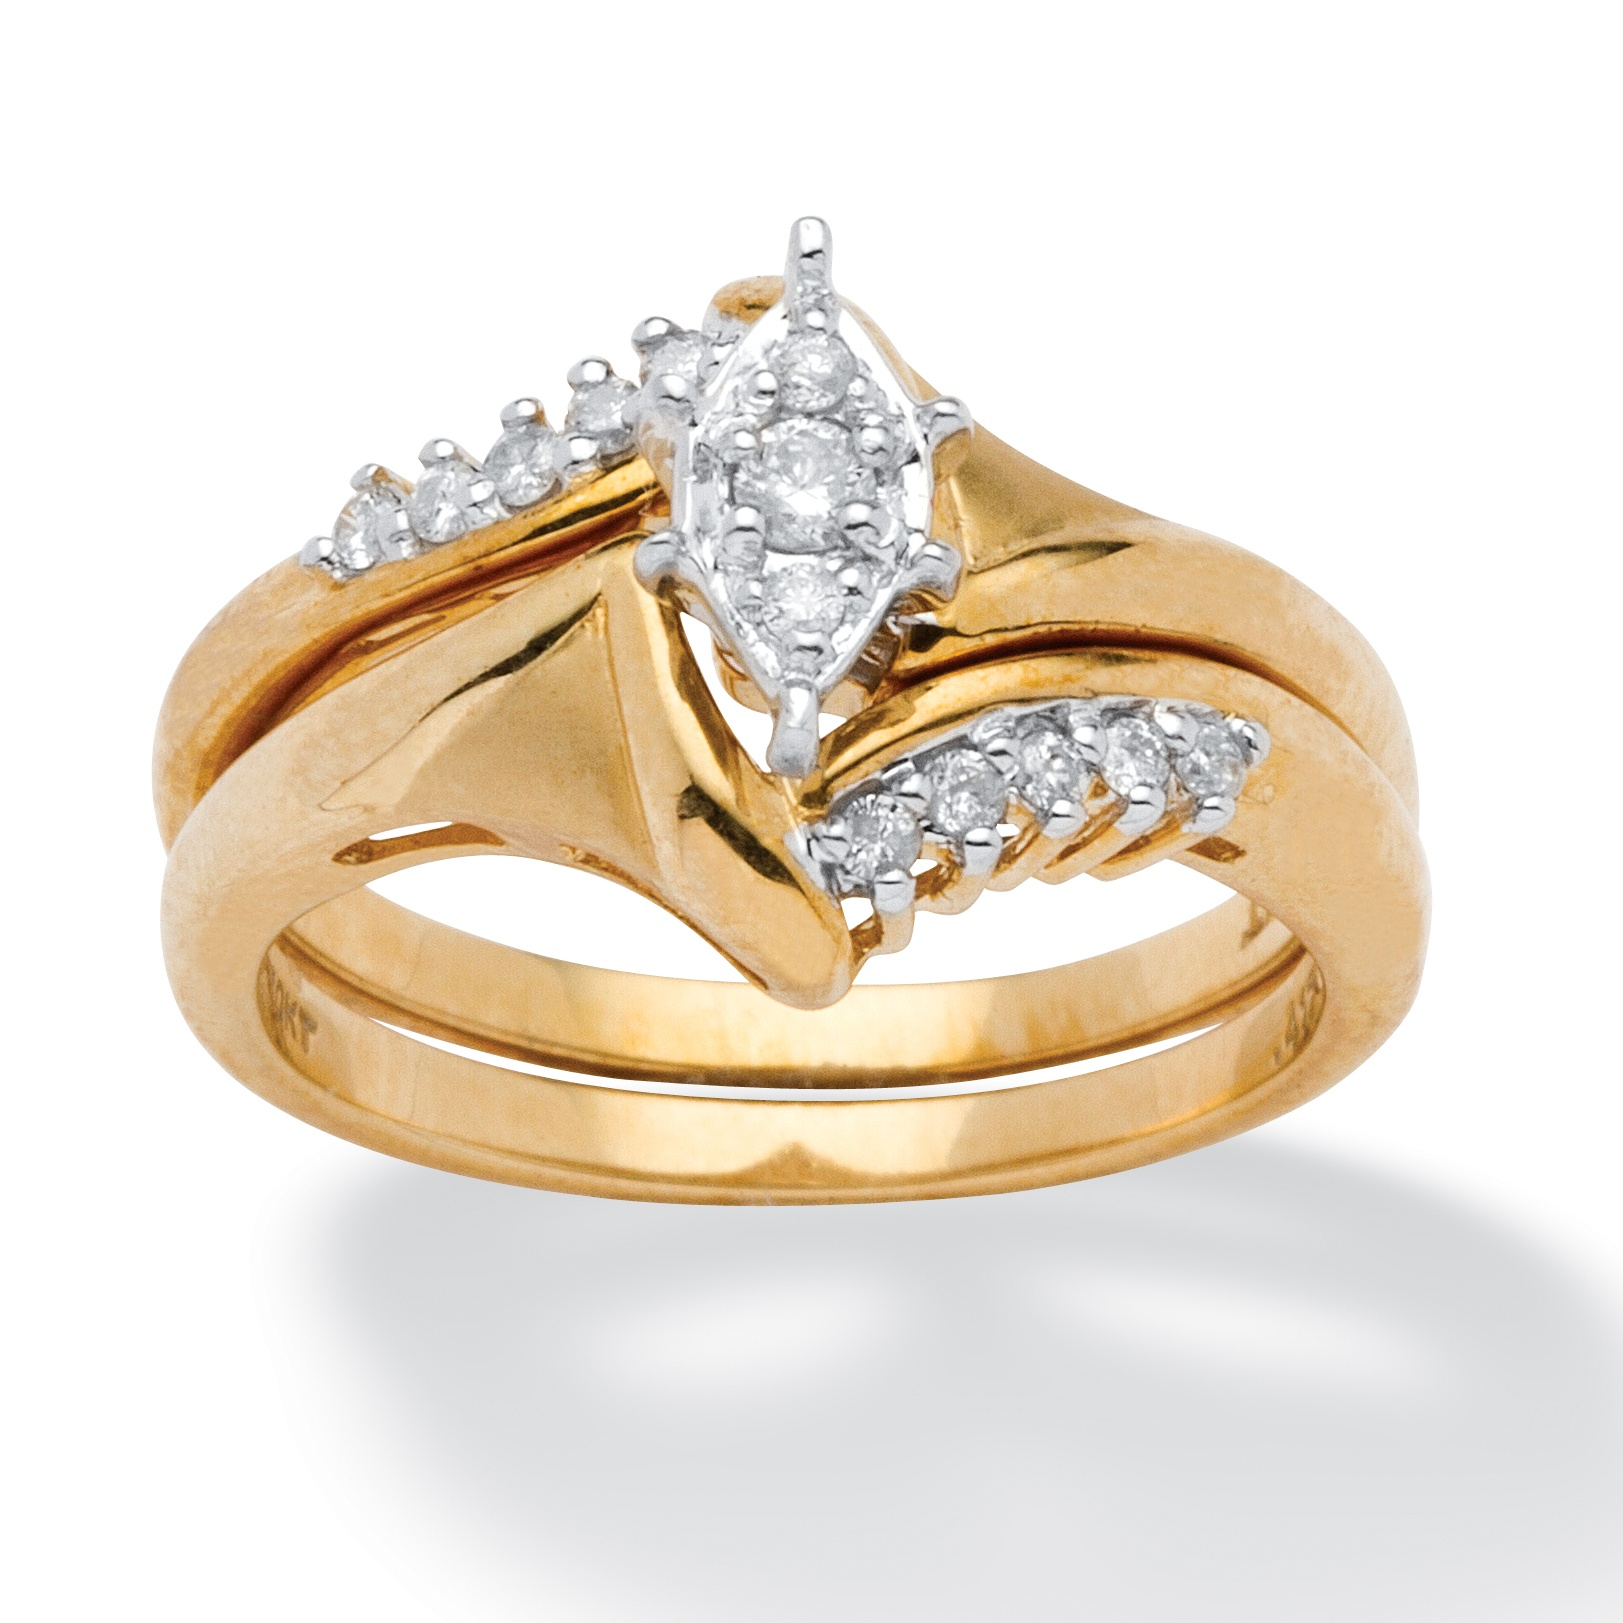 15 TCW Round Diamond 10k Yellow Gold 2Piece Bridal Engagement